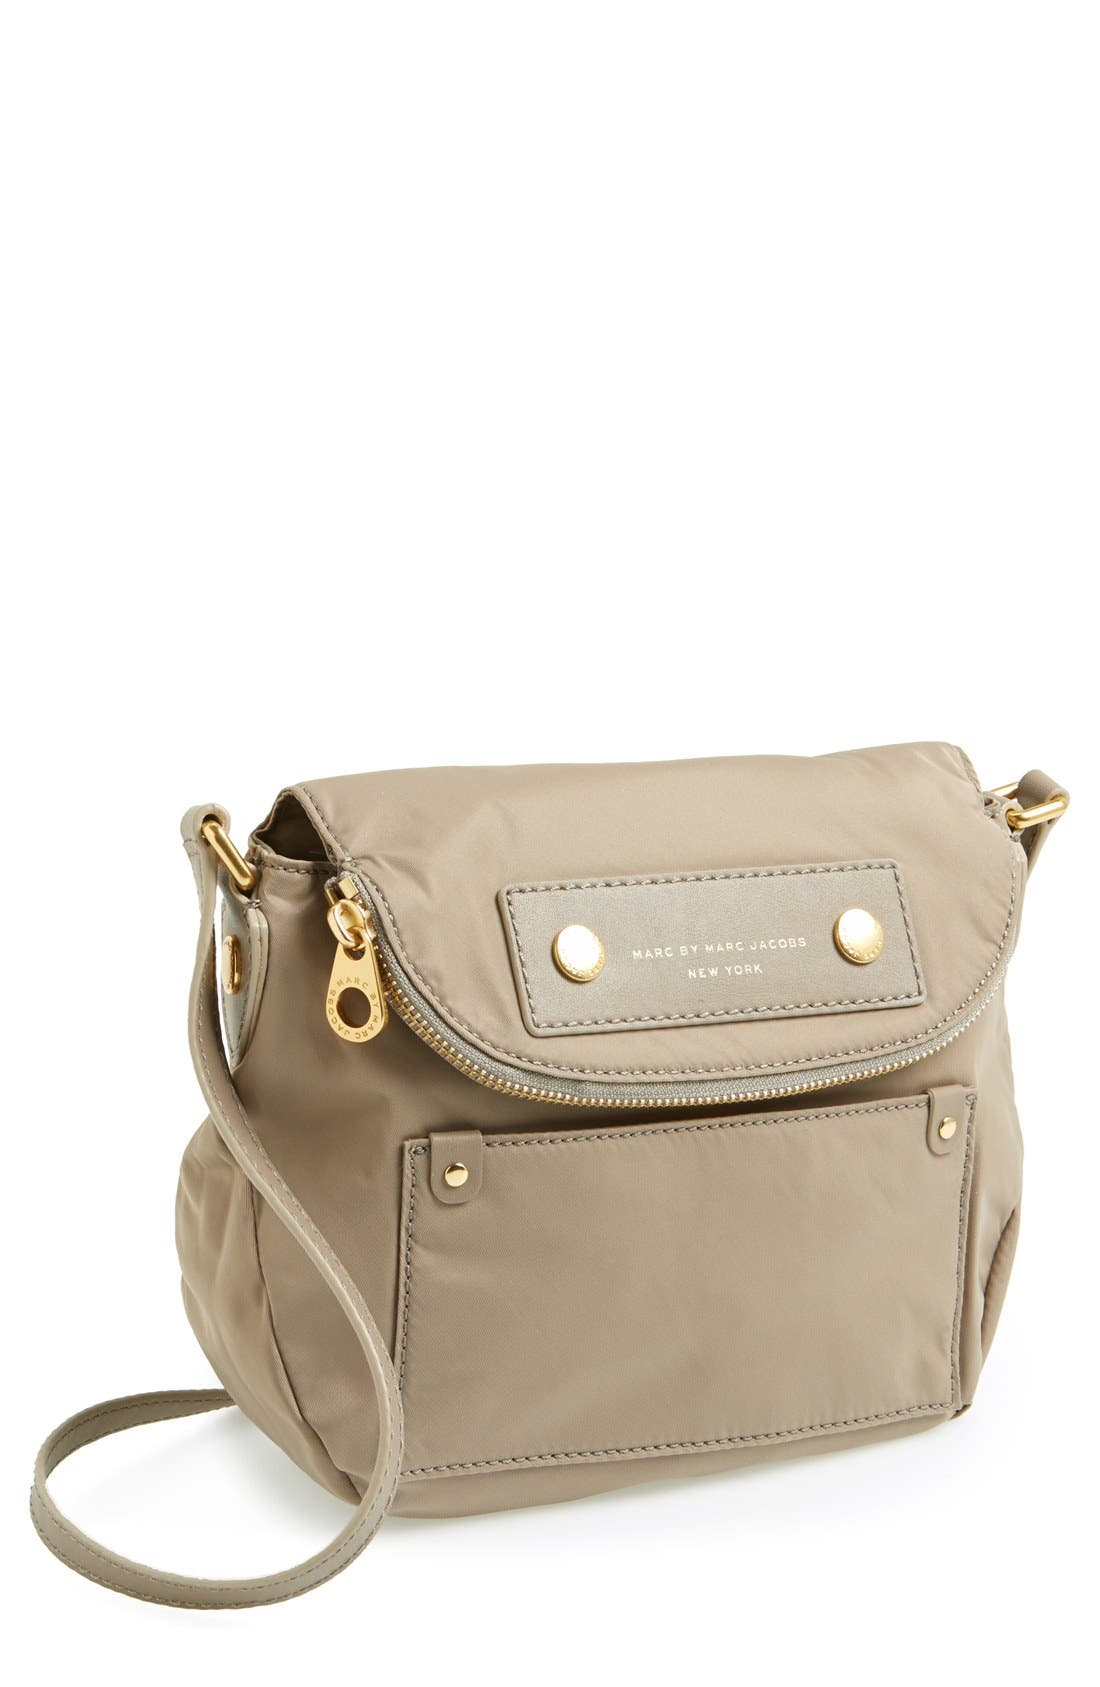 Alternate Image 1 Selected - MARC BY MARC JACOBS 'Preppy Nylon Natasha - Mini' Crossbody Bag